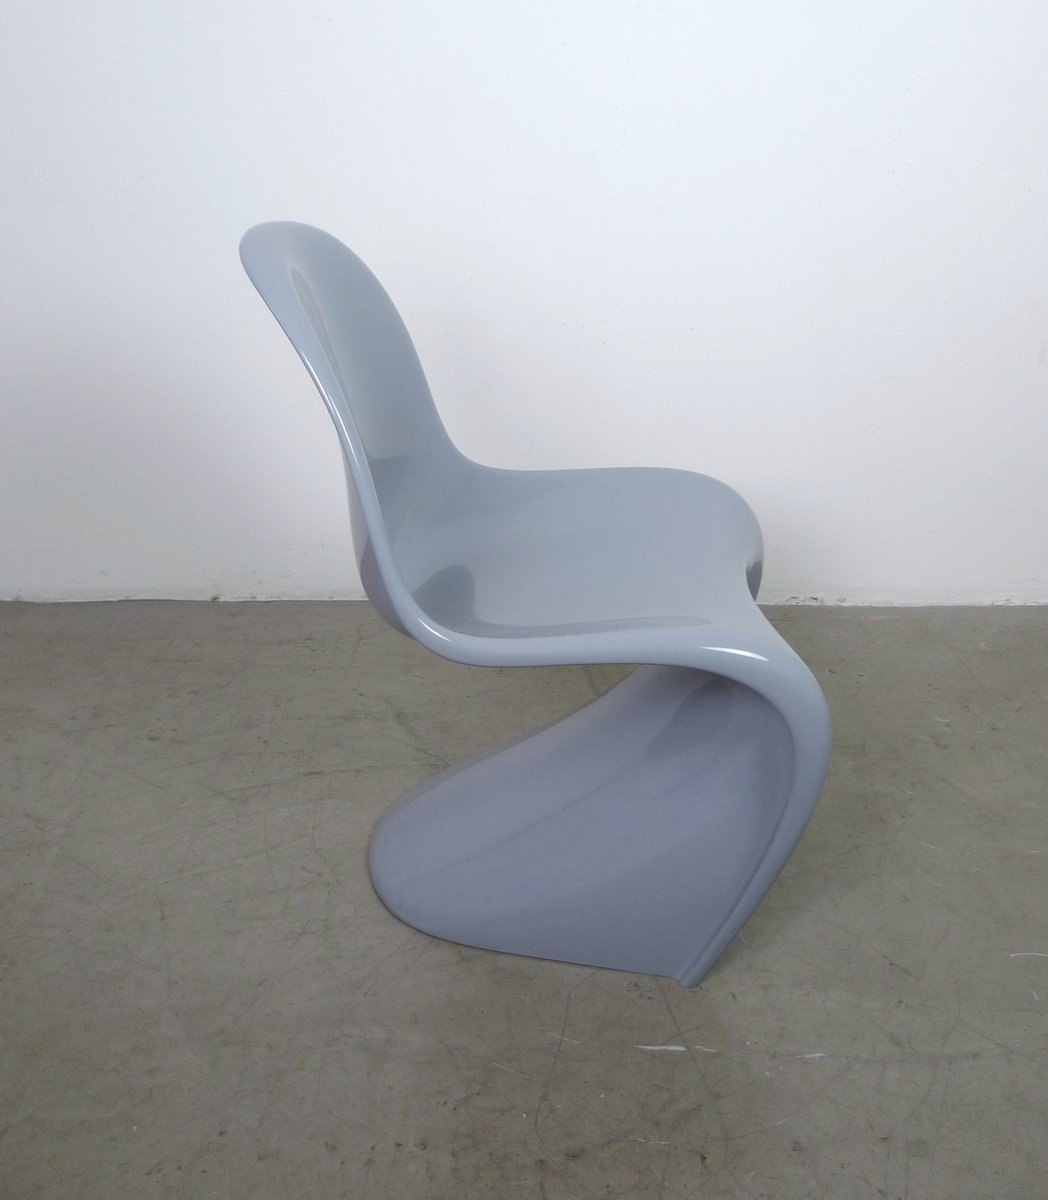 grey panton chair classic by verner panton for vitra 1998. Black Bedroom Furniture Sets. Home Design Ideas